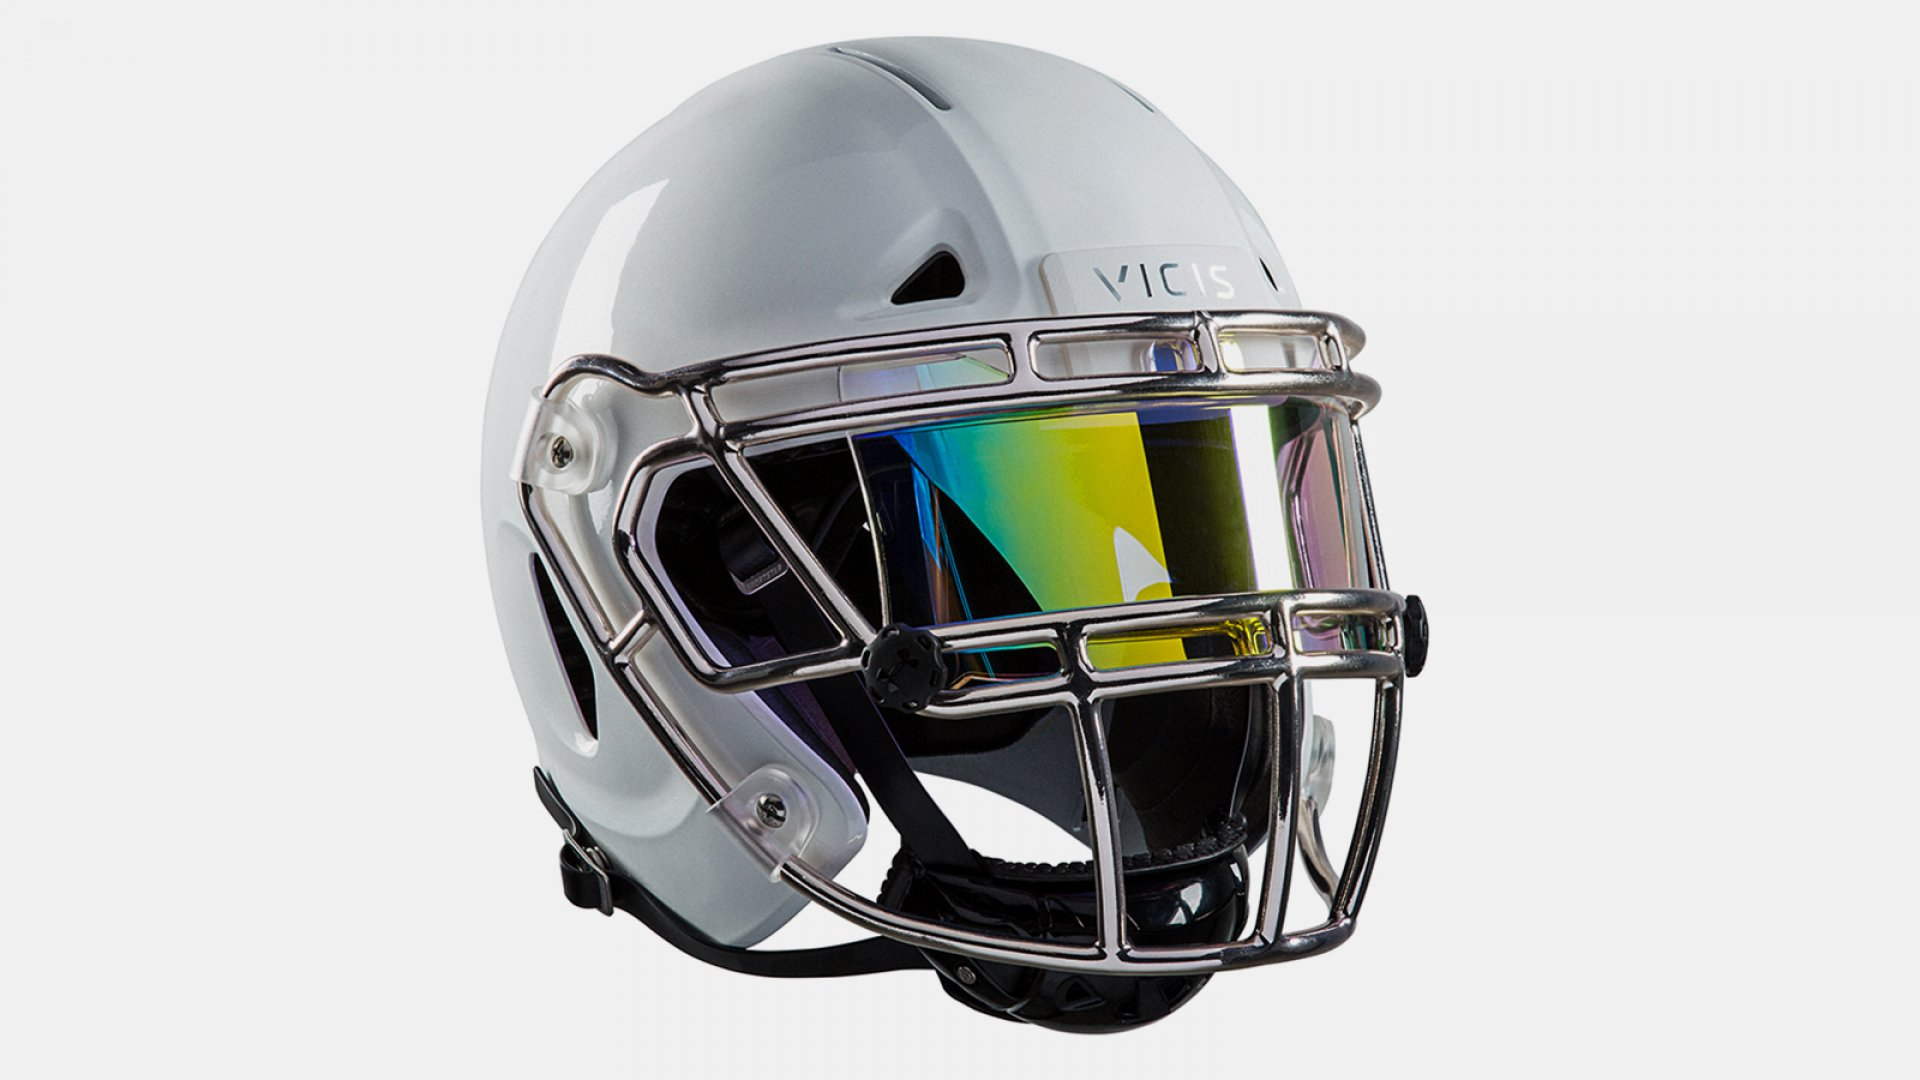 The Zero1 helmet.